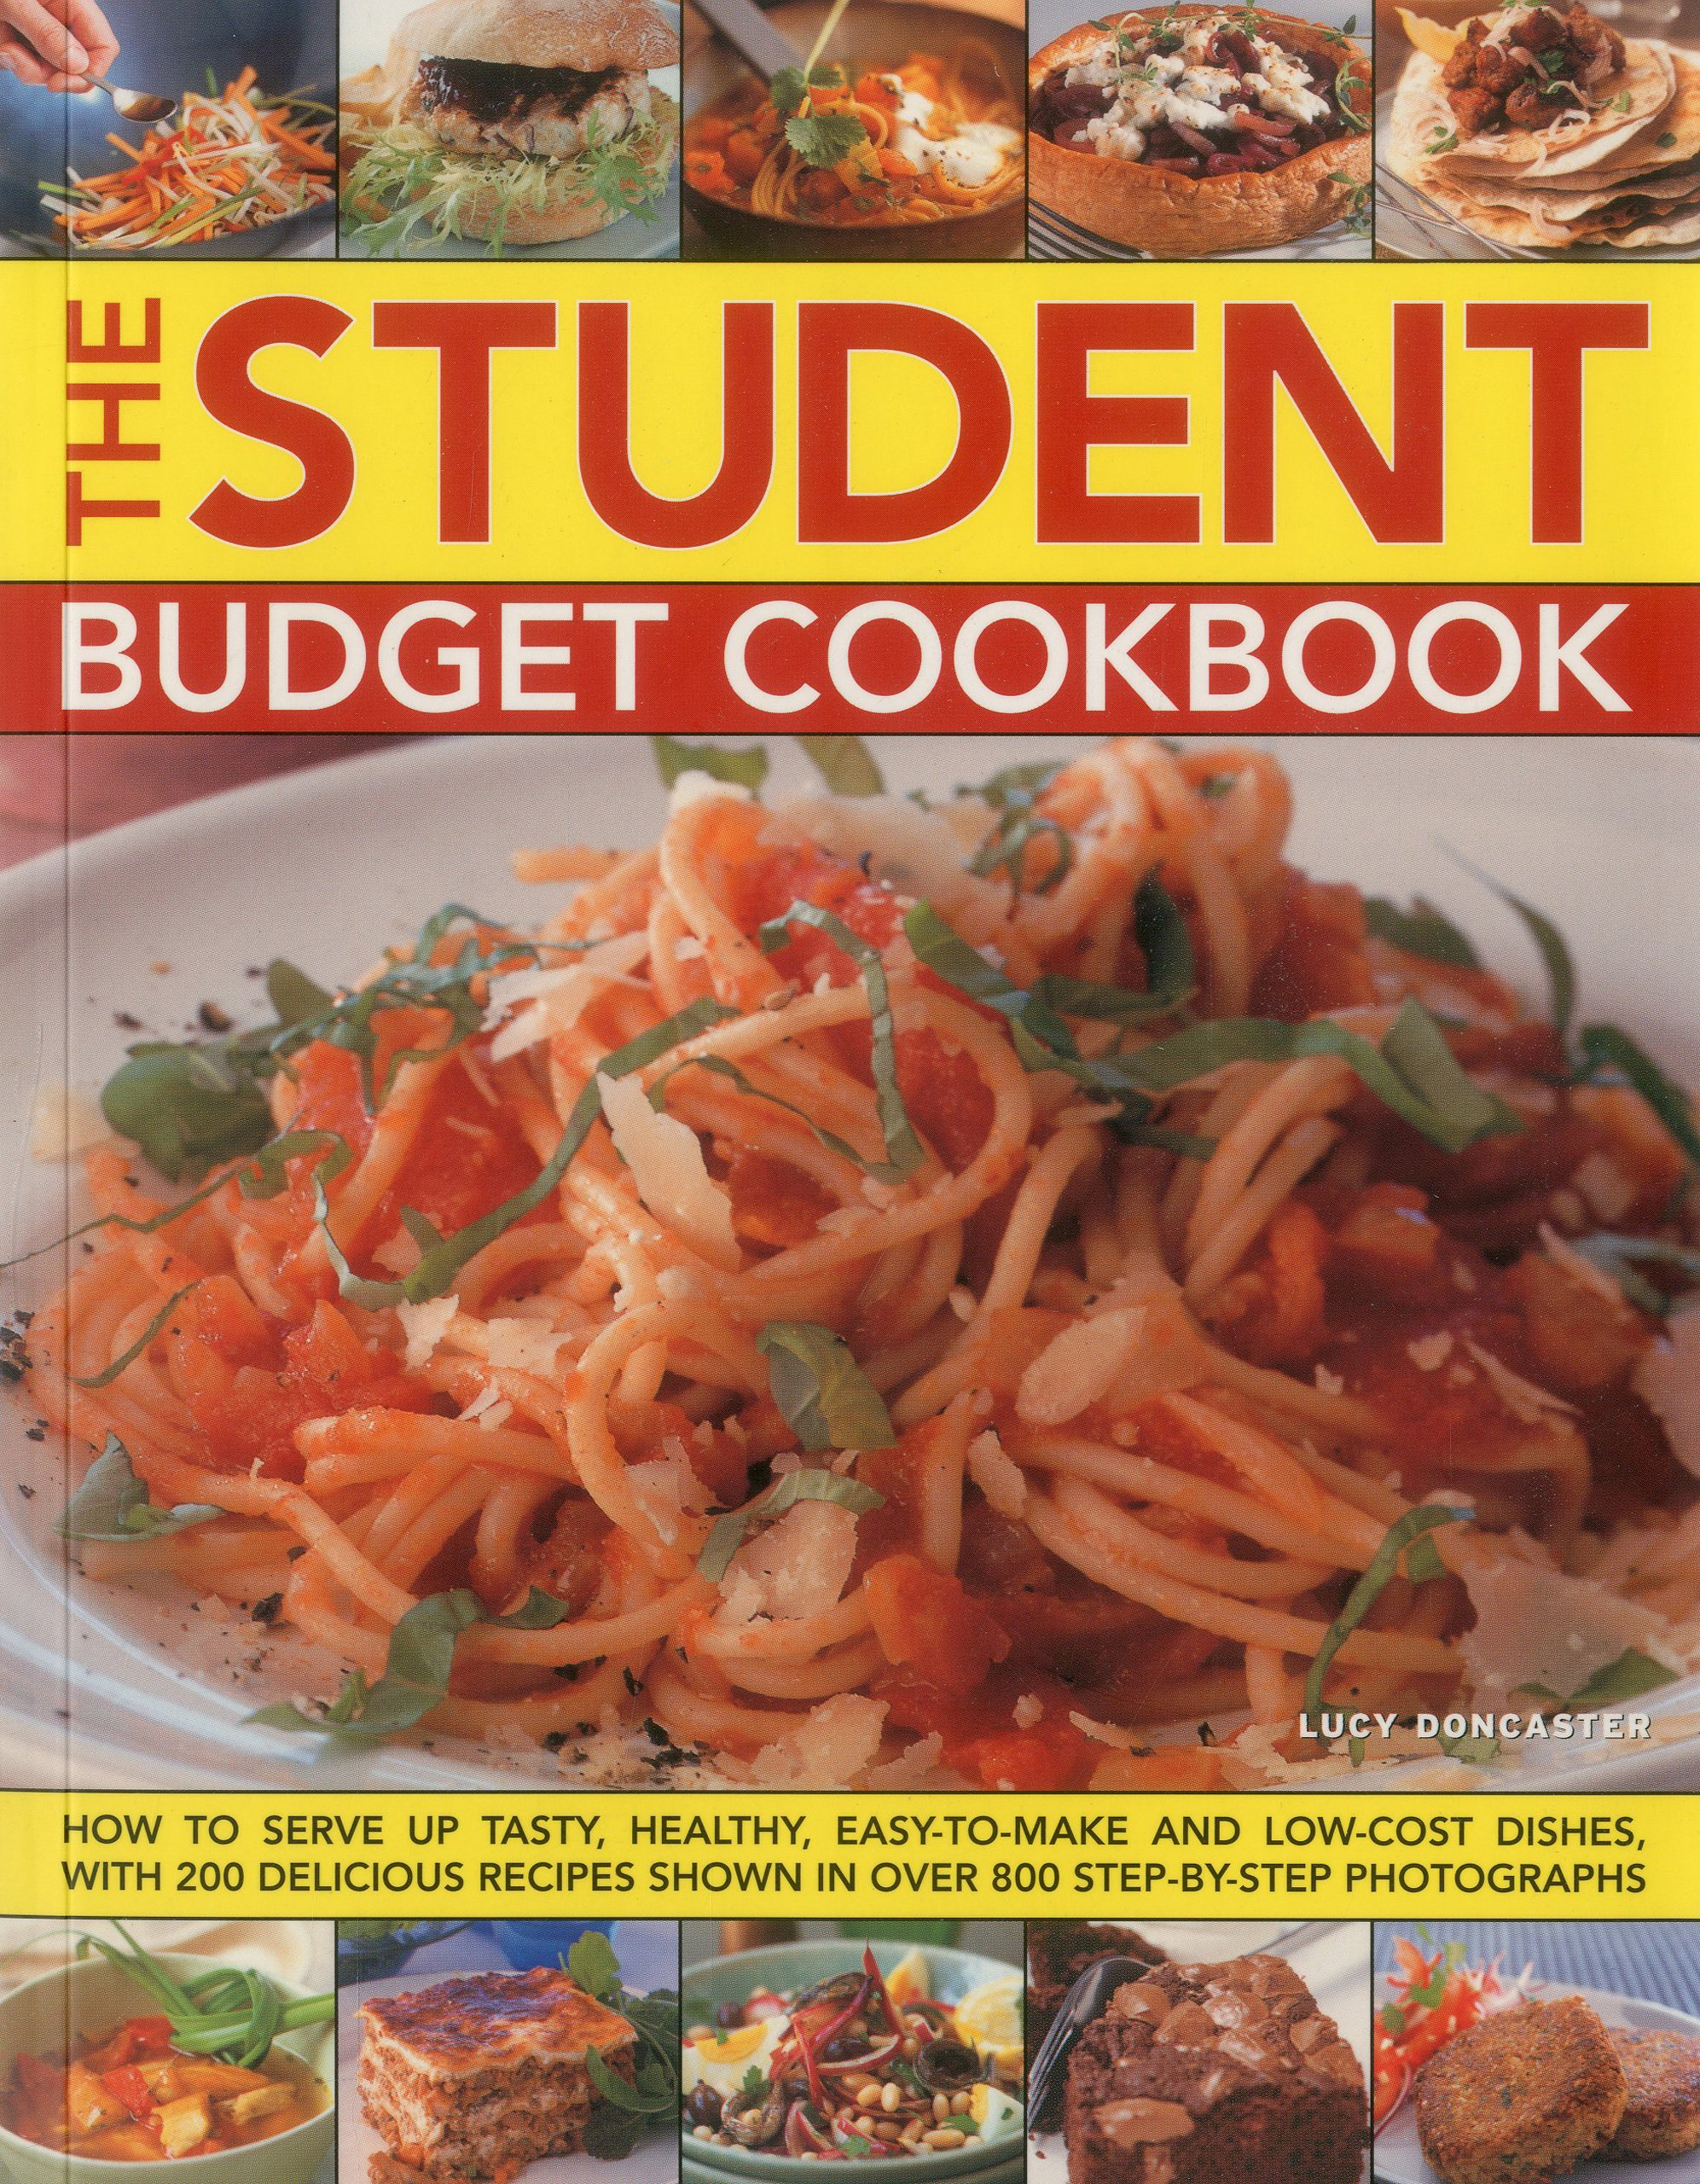 Read Online The Student Budget Cookbook: How to serve up tasty, healthy, easy-to-make and low-cost dishes, with 200 delicious recipes shown in 800 step-by-step photographs pdf